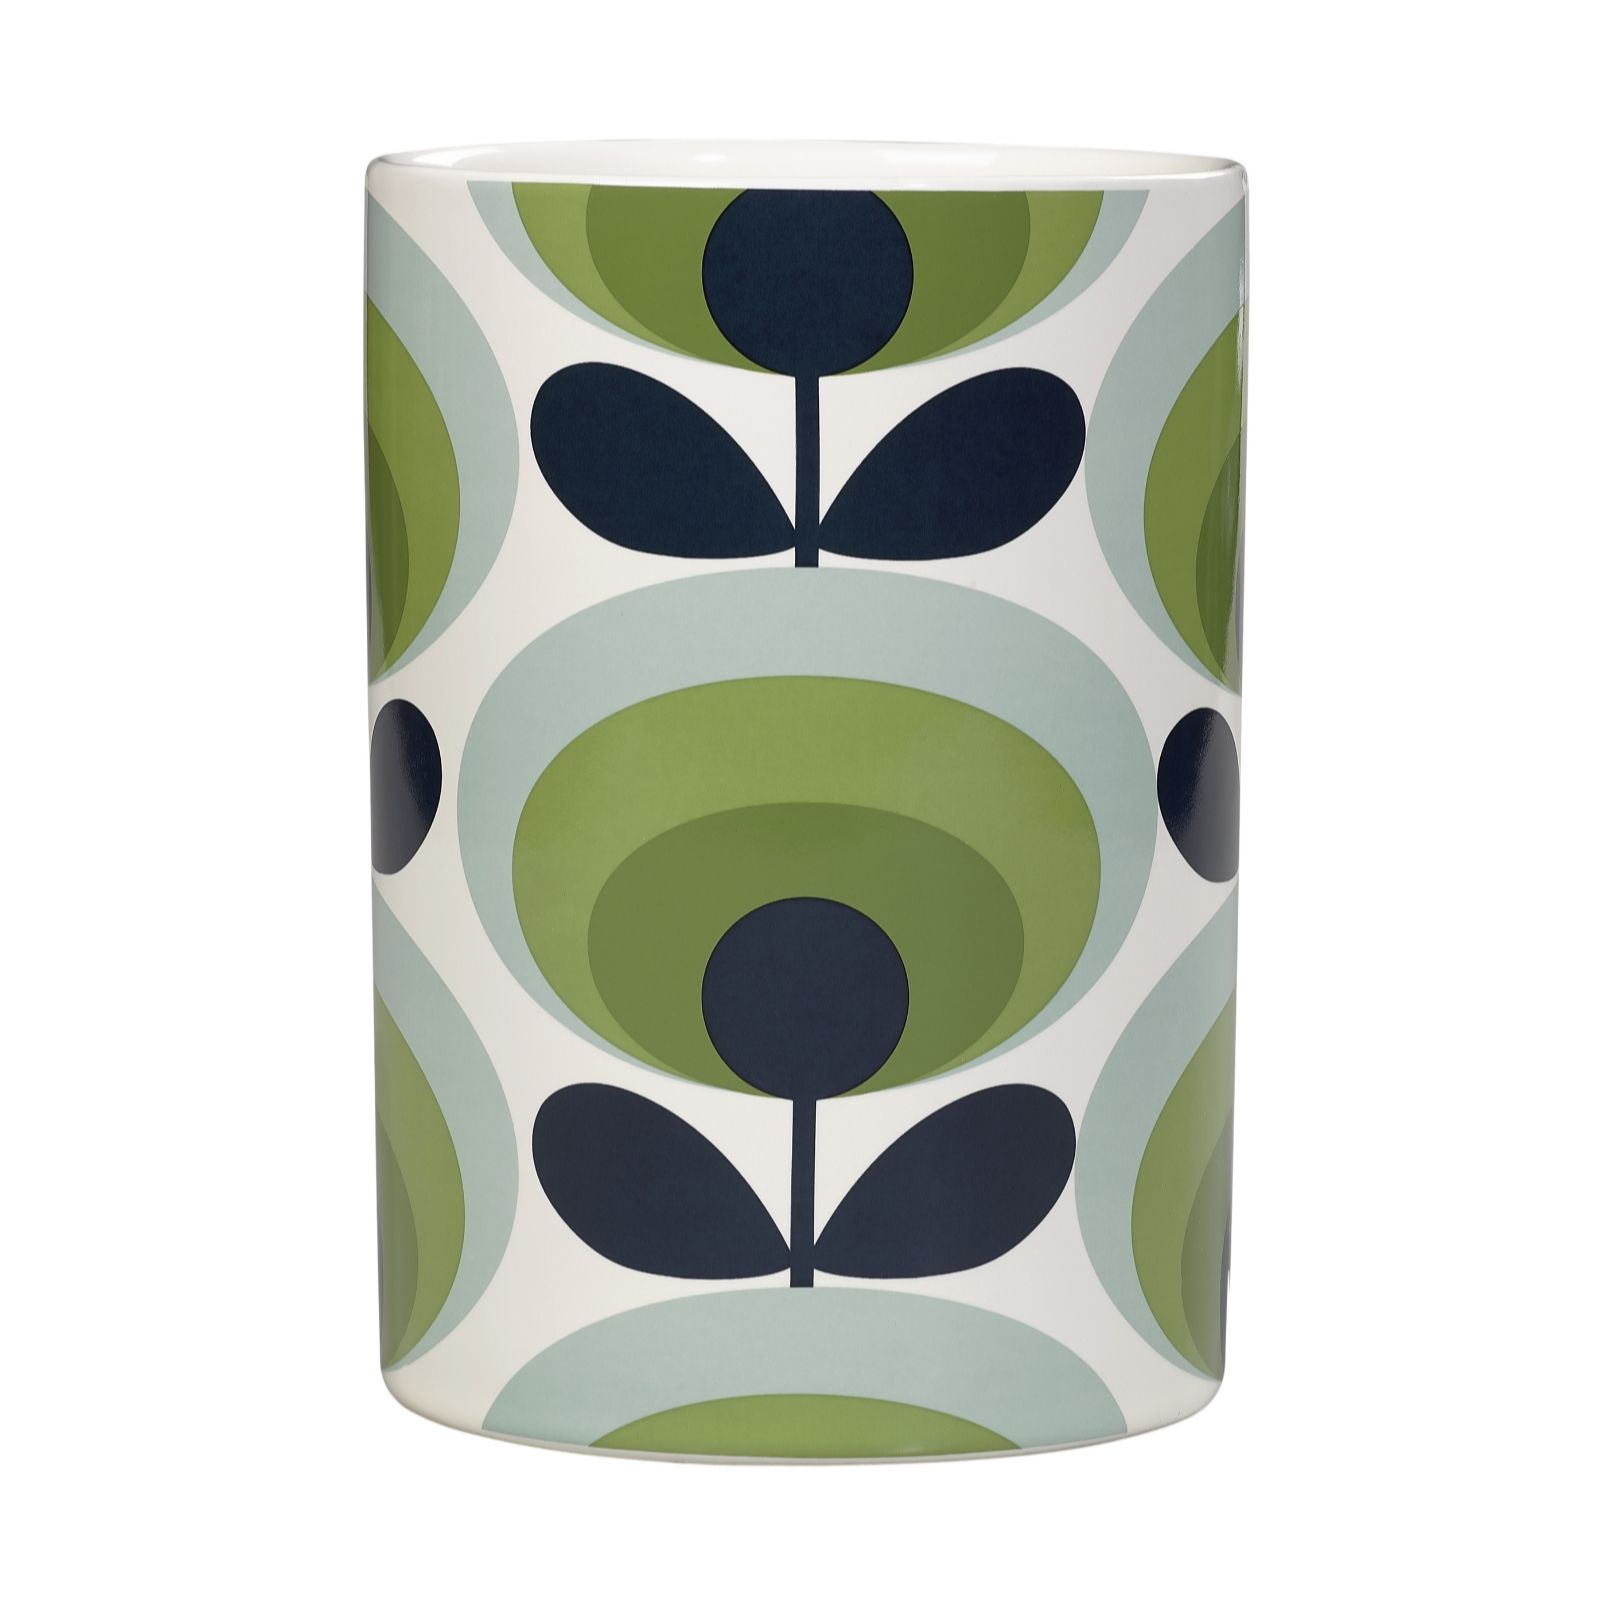 Orla Kiely 70u0027s Flower Round Utensil Holder   806798